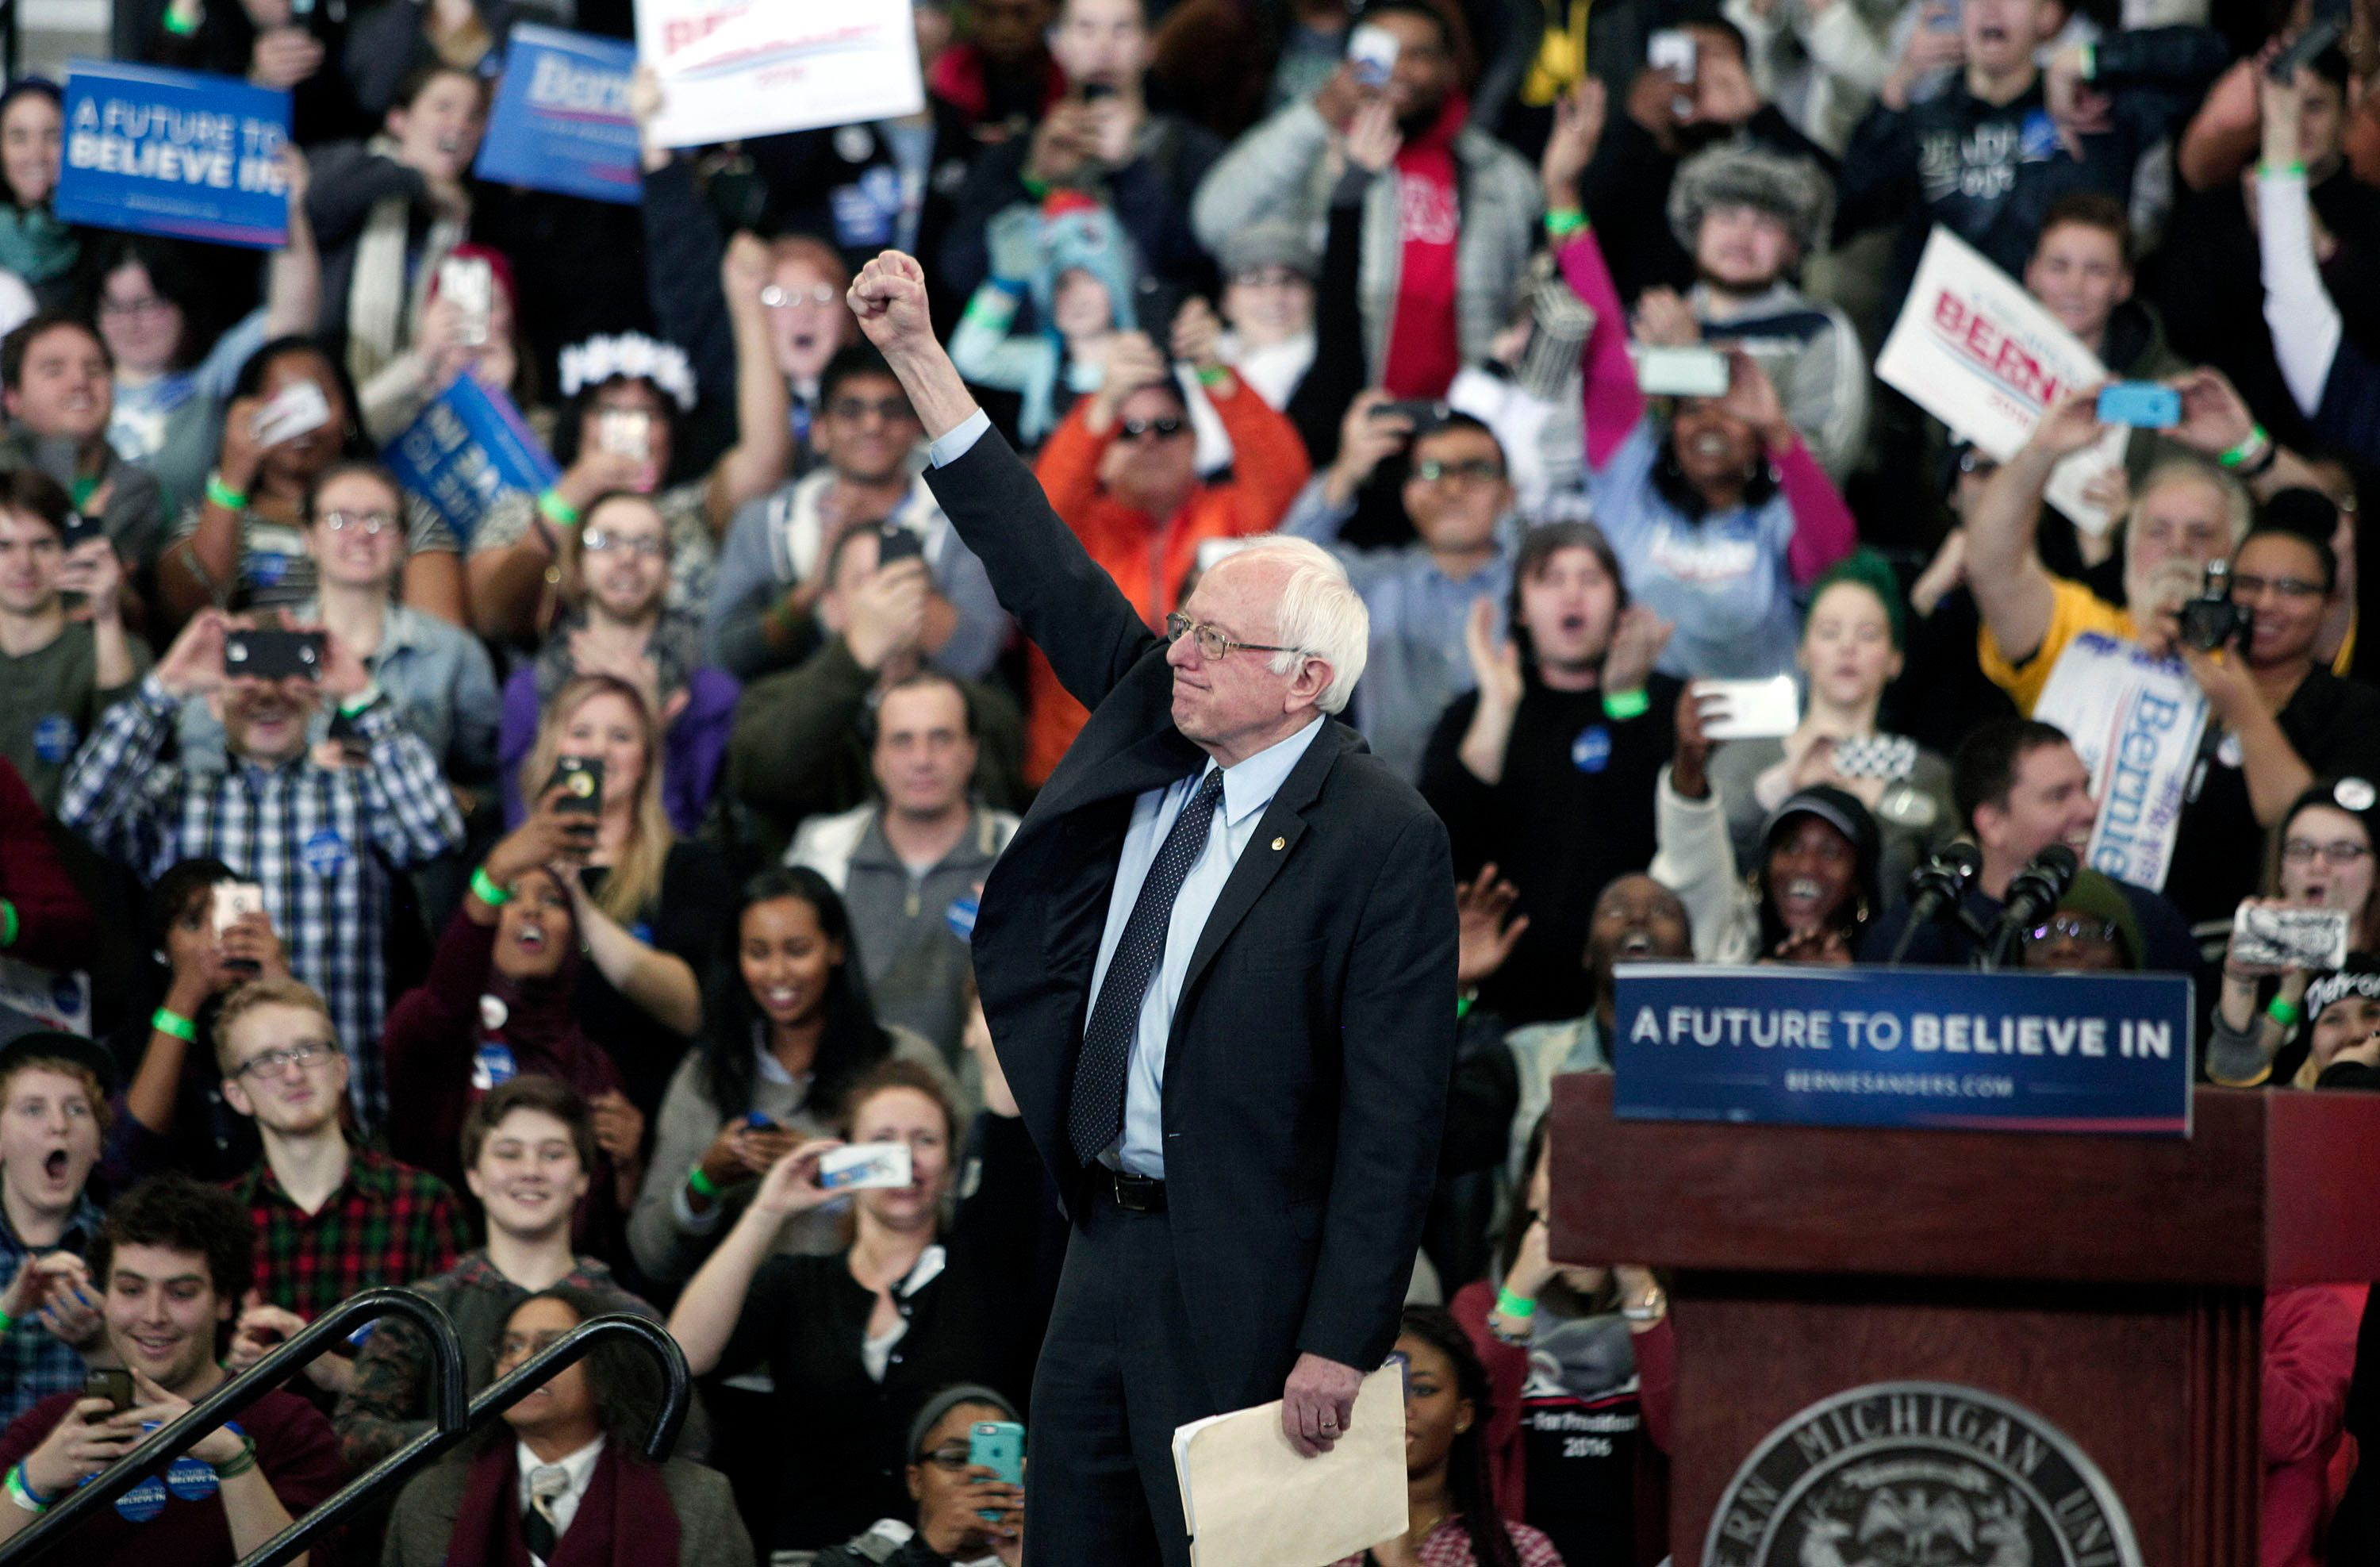 YPSILANTI, MI - FEBRUARY 15:  Democratic presidential candidate Sen. Bernie Sanders (D-VT) gestures during his first campaign rally in Michigan at Eastern Michigan University February 15, 2016 in Ypsilanti, Michigan. At his 'A Future To Believe In' rally, Sanders spoke on a wide range of issues, including his plans to make public colleges and universities tuition-free.  The next voting for the democratic candidates will be the Democratic caucus in Nevada on February 20th. (Photo by Bill Pugliano/Getty Images)